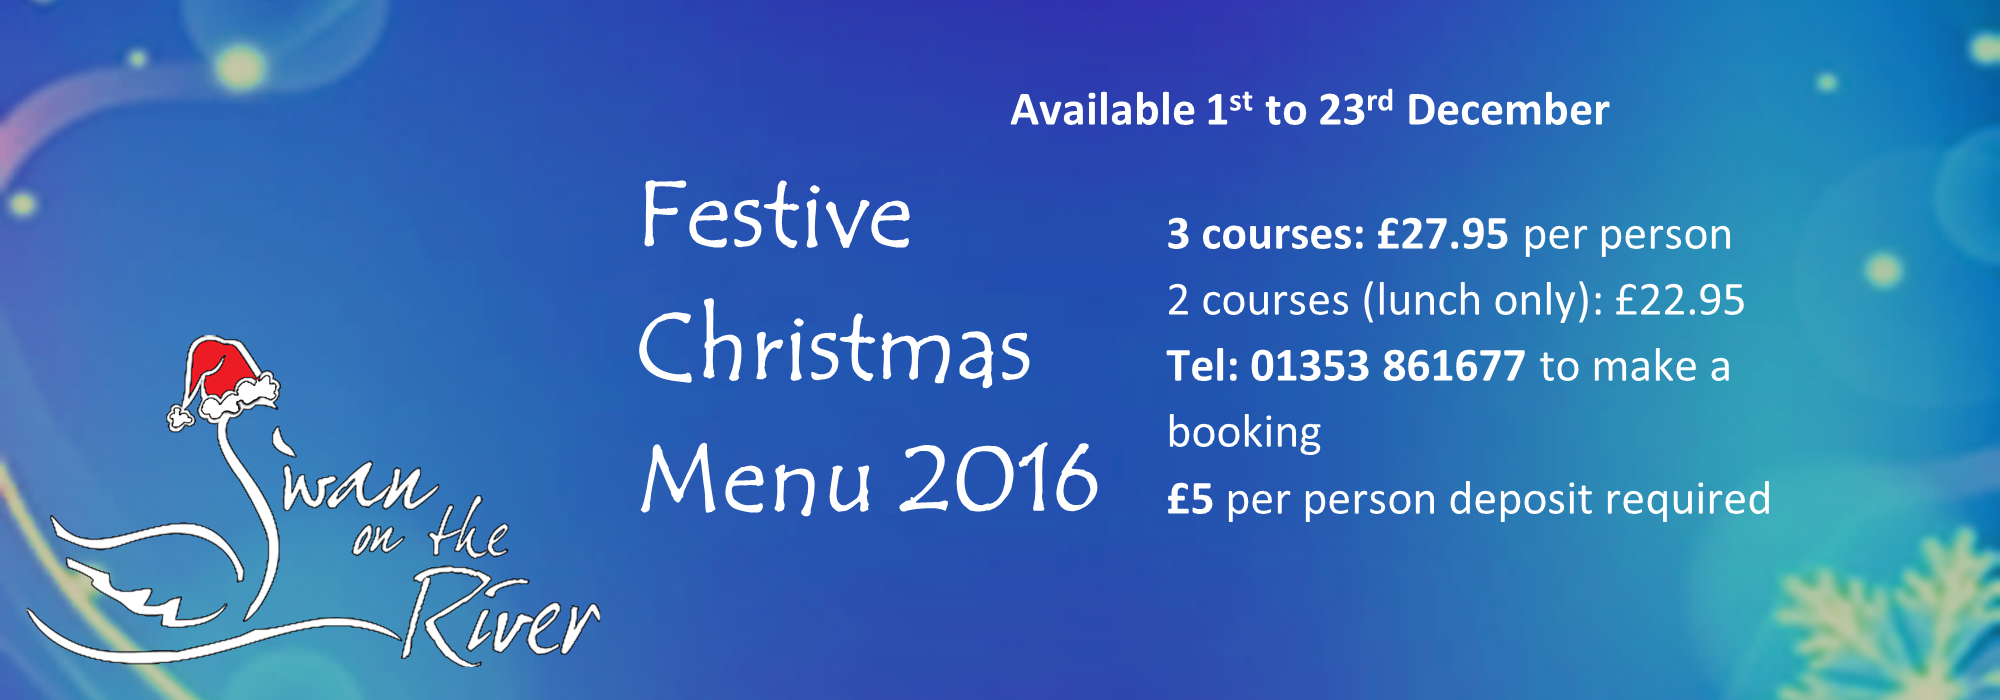 Festive Feasting at the Swan